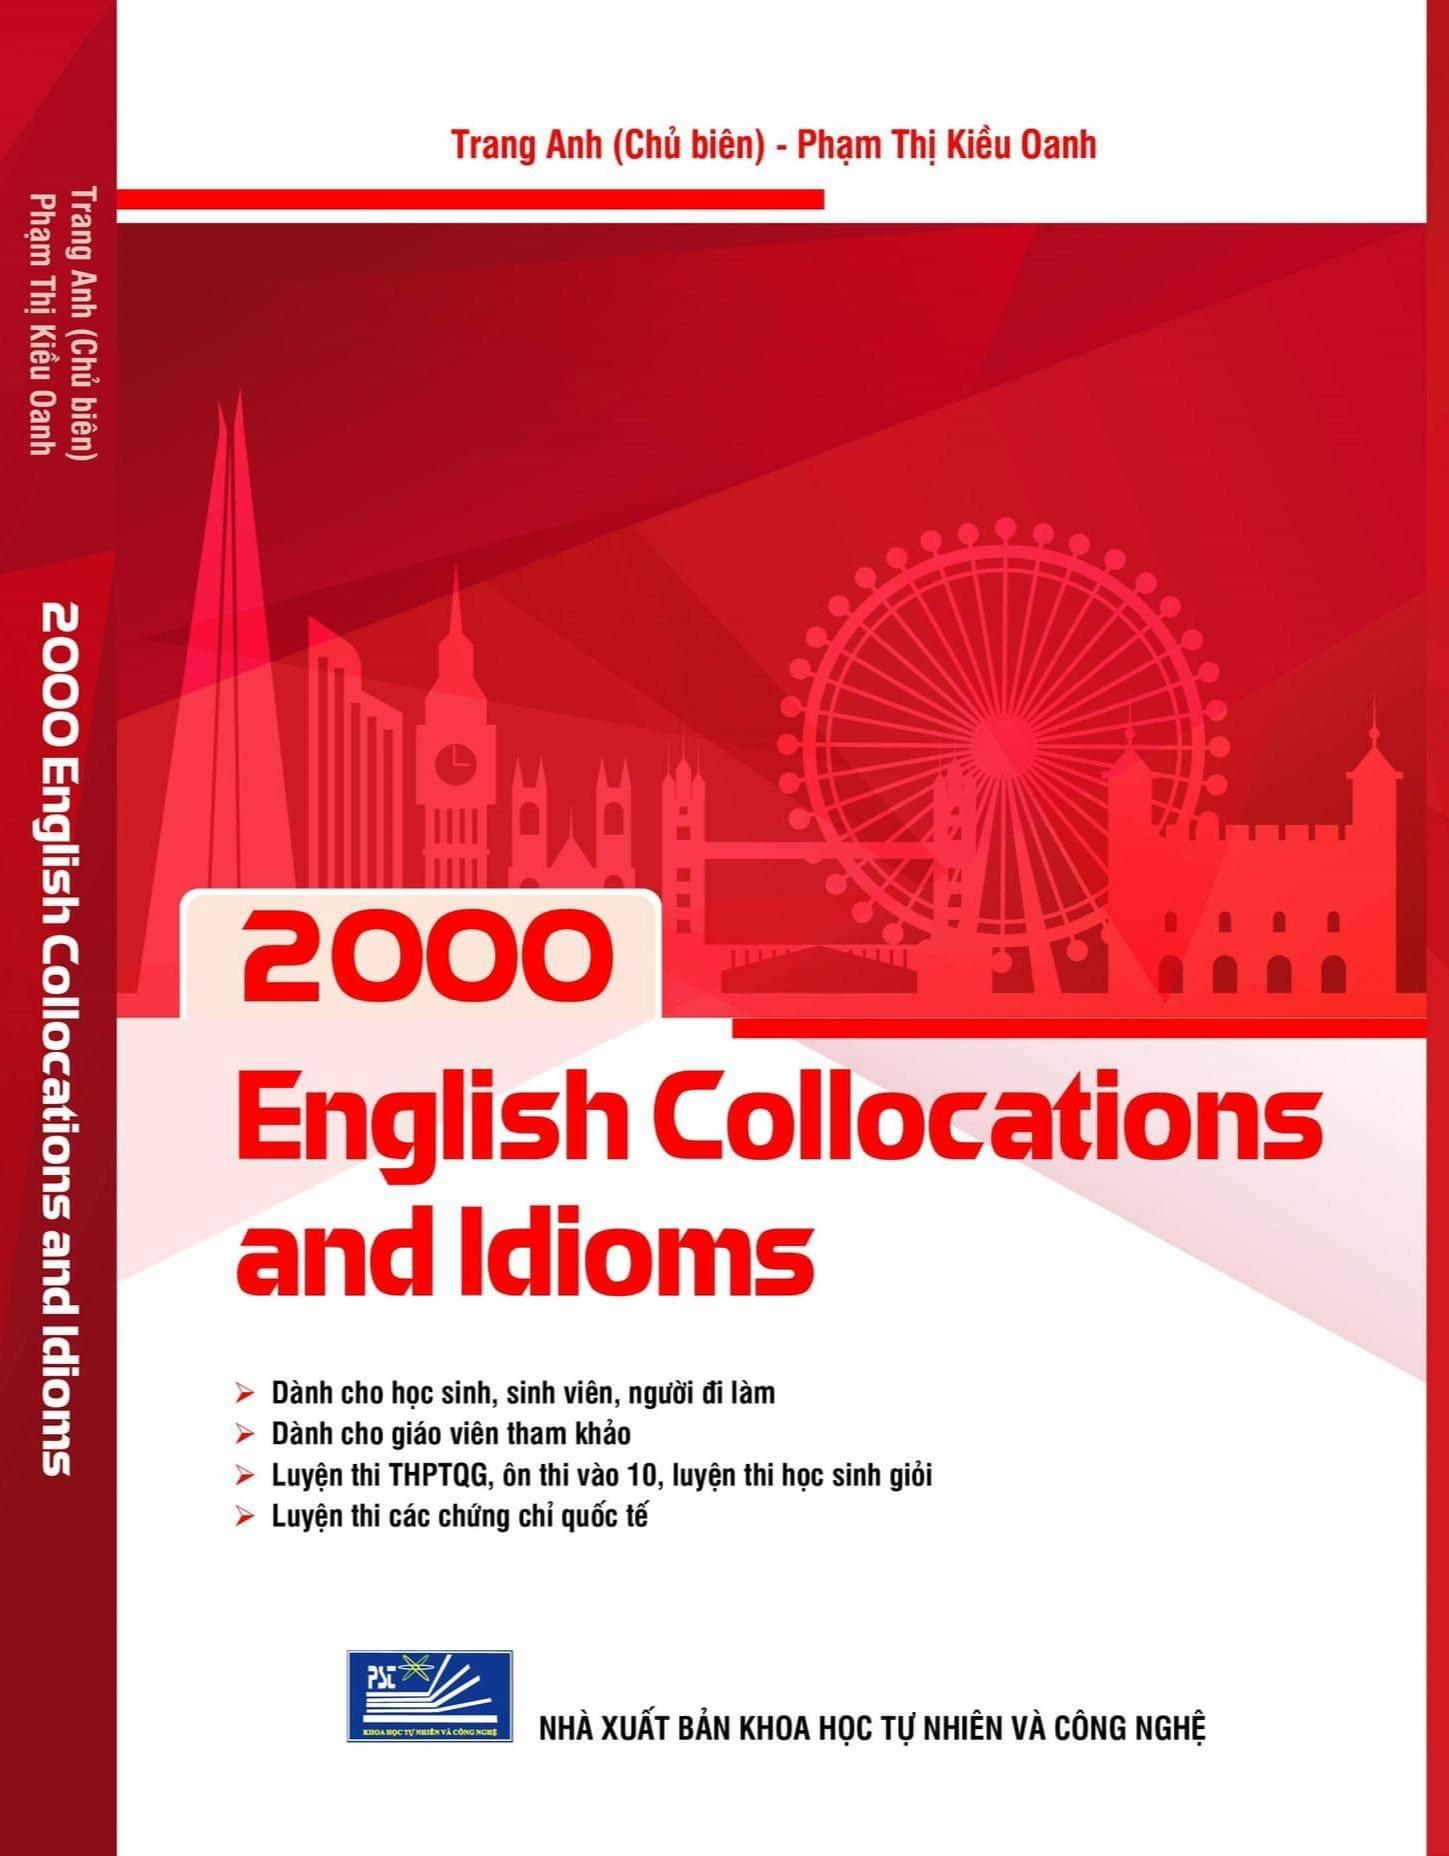 Sách - 2000 english collocations and idioms - Cô Trang Anh